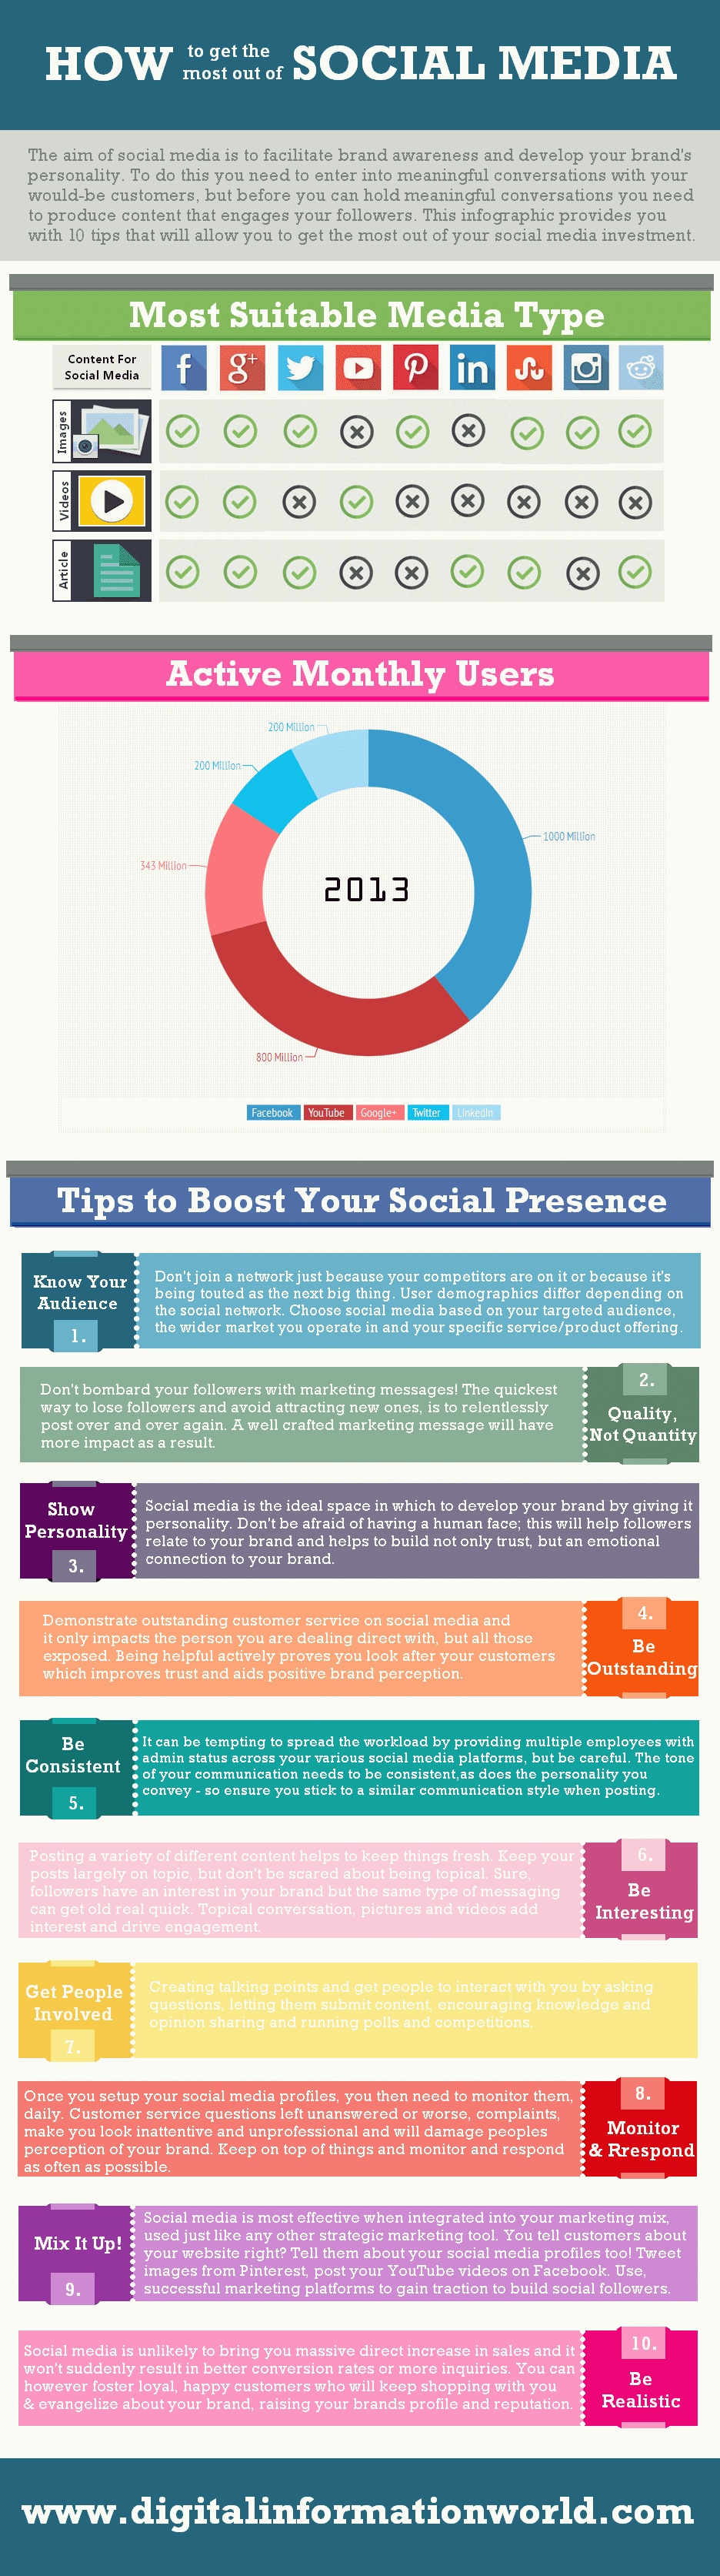 How To Maximize Brand Awareness On Social Media [Infographic]